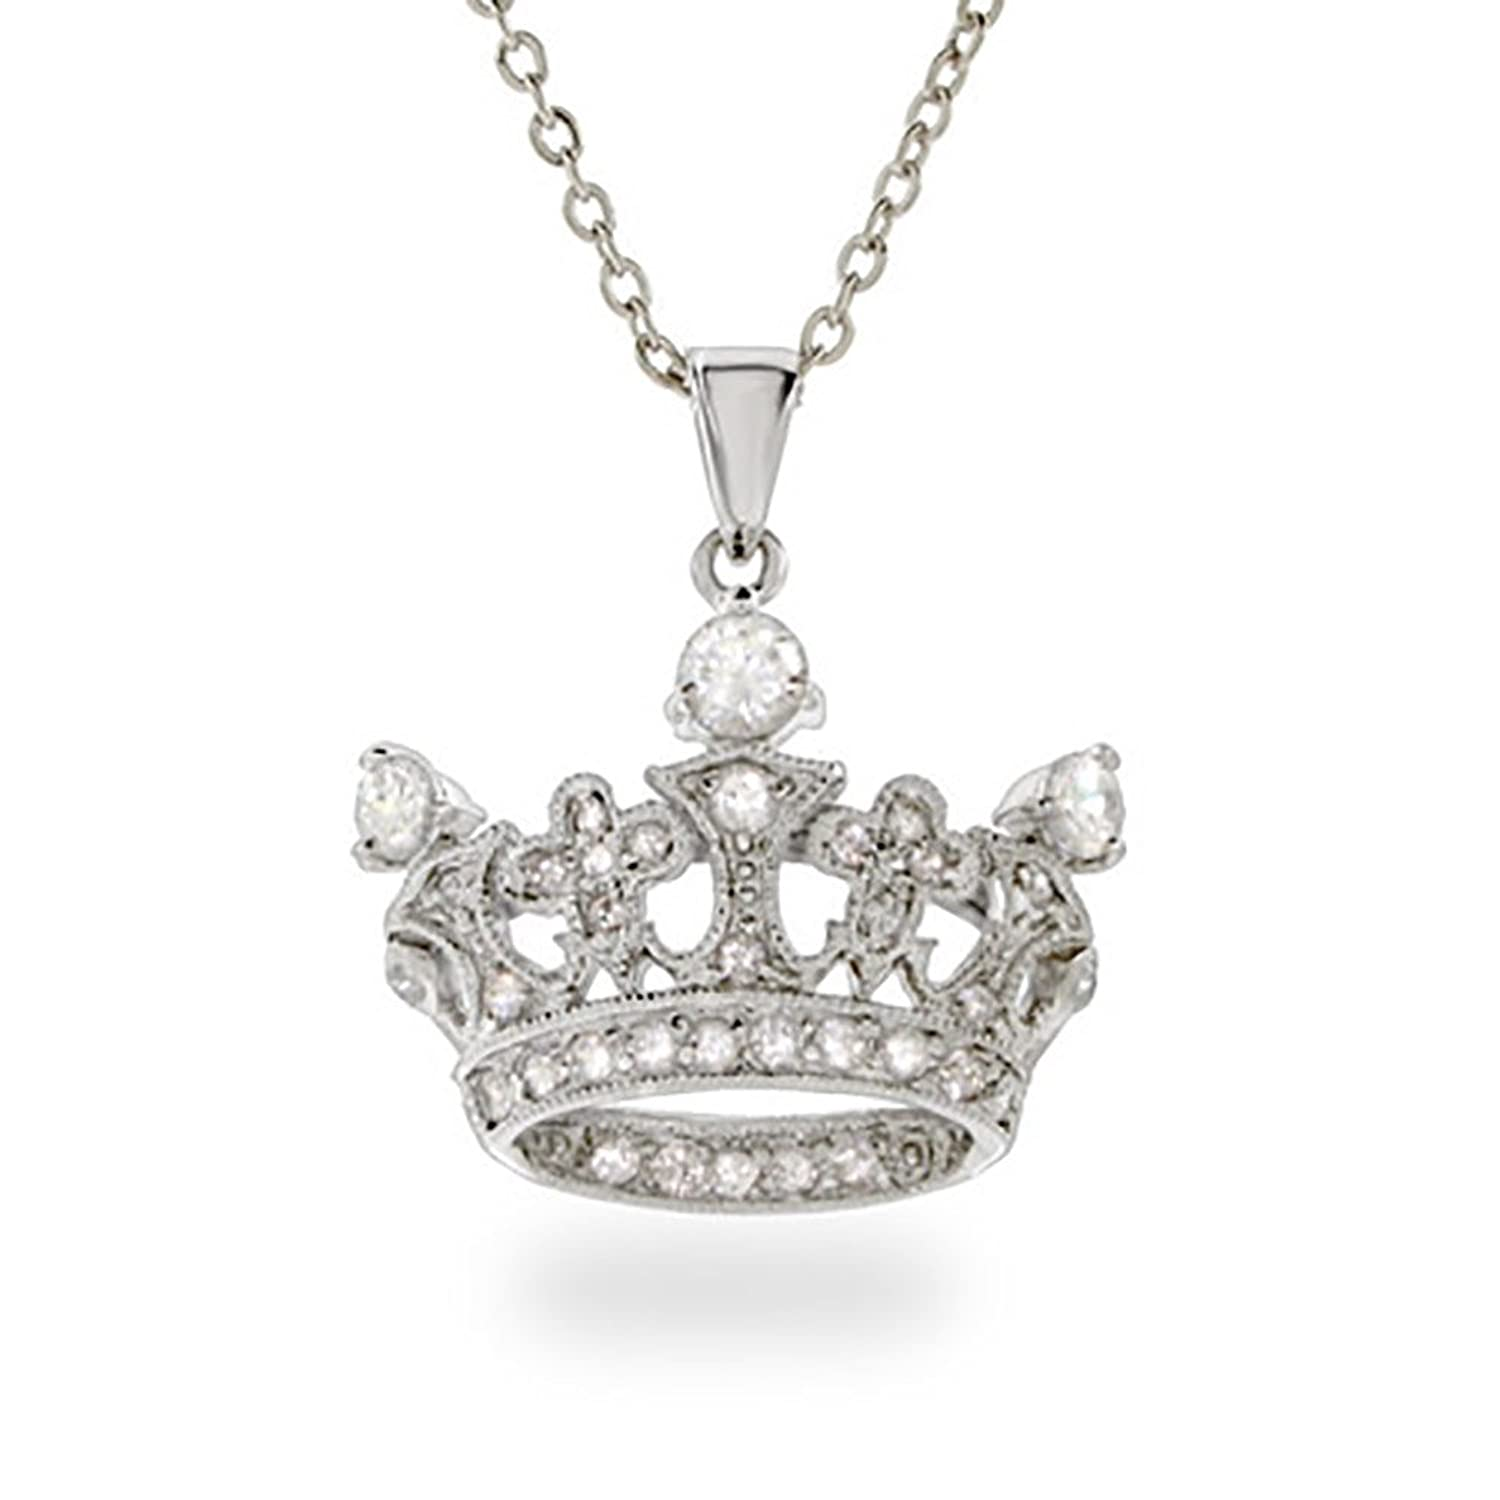 necklace soho silver crown charm necklaces mens lazaro